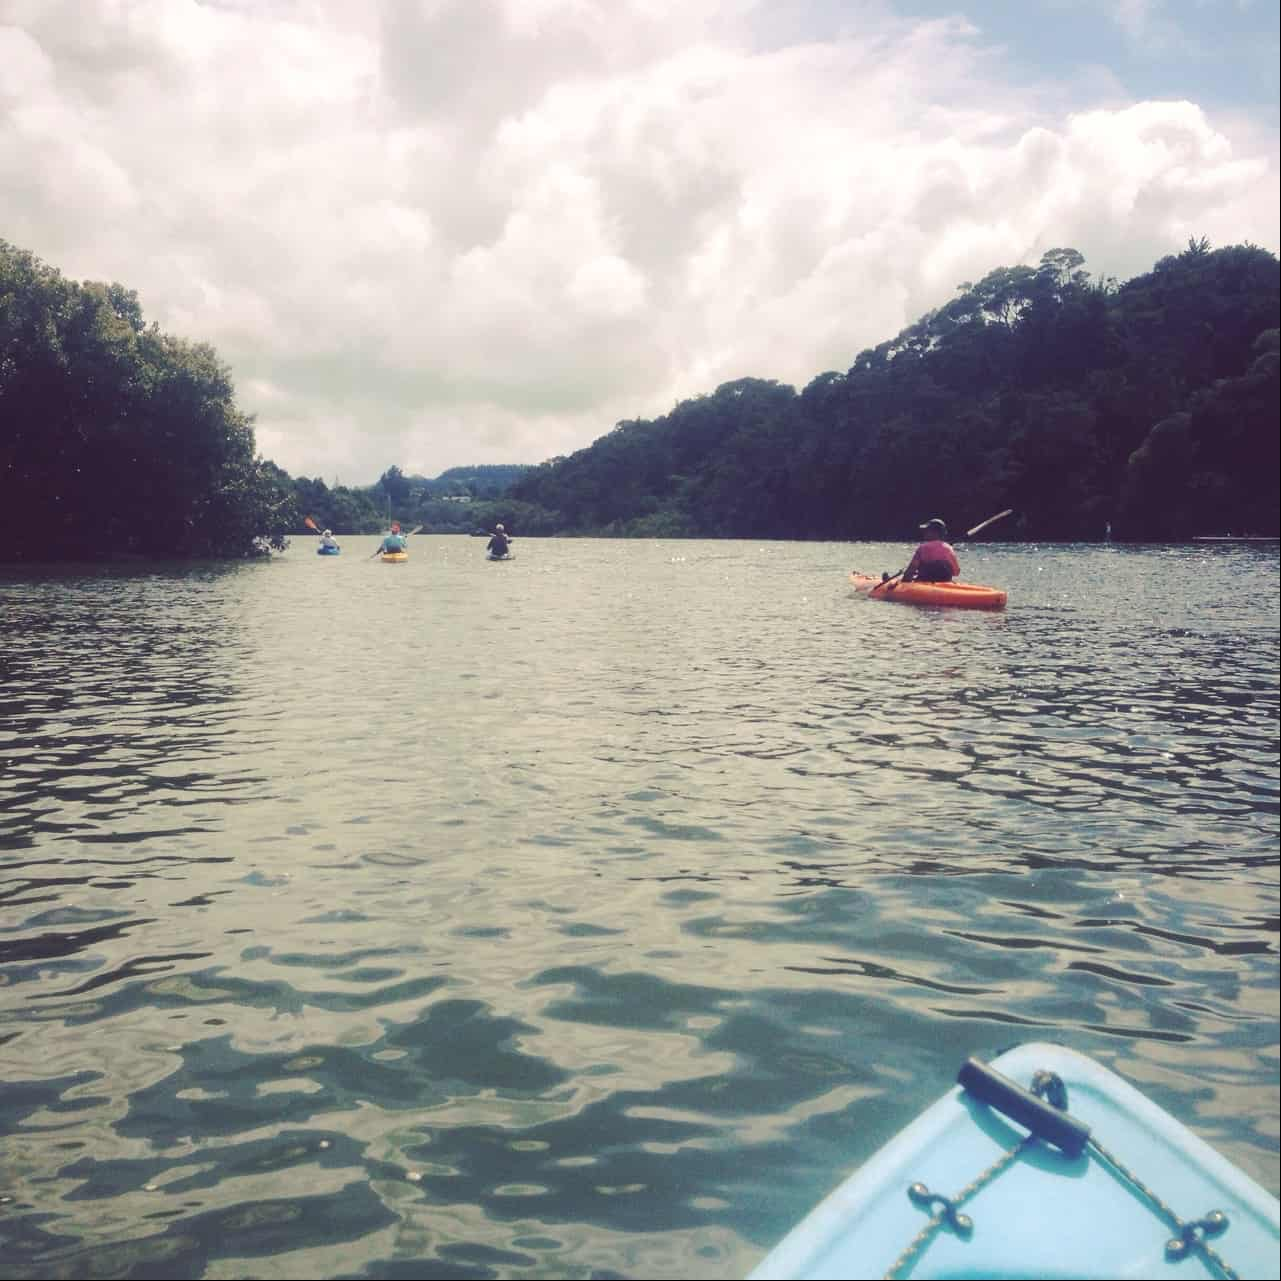 Although Kerikeri is on the water, it's a wide river inlet rather than a beachy place.